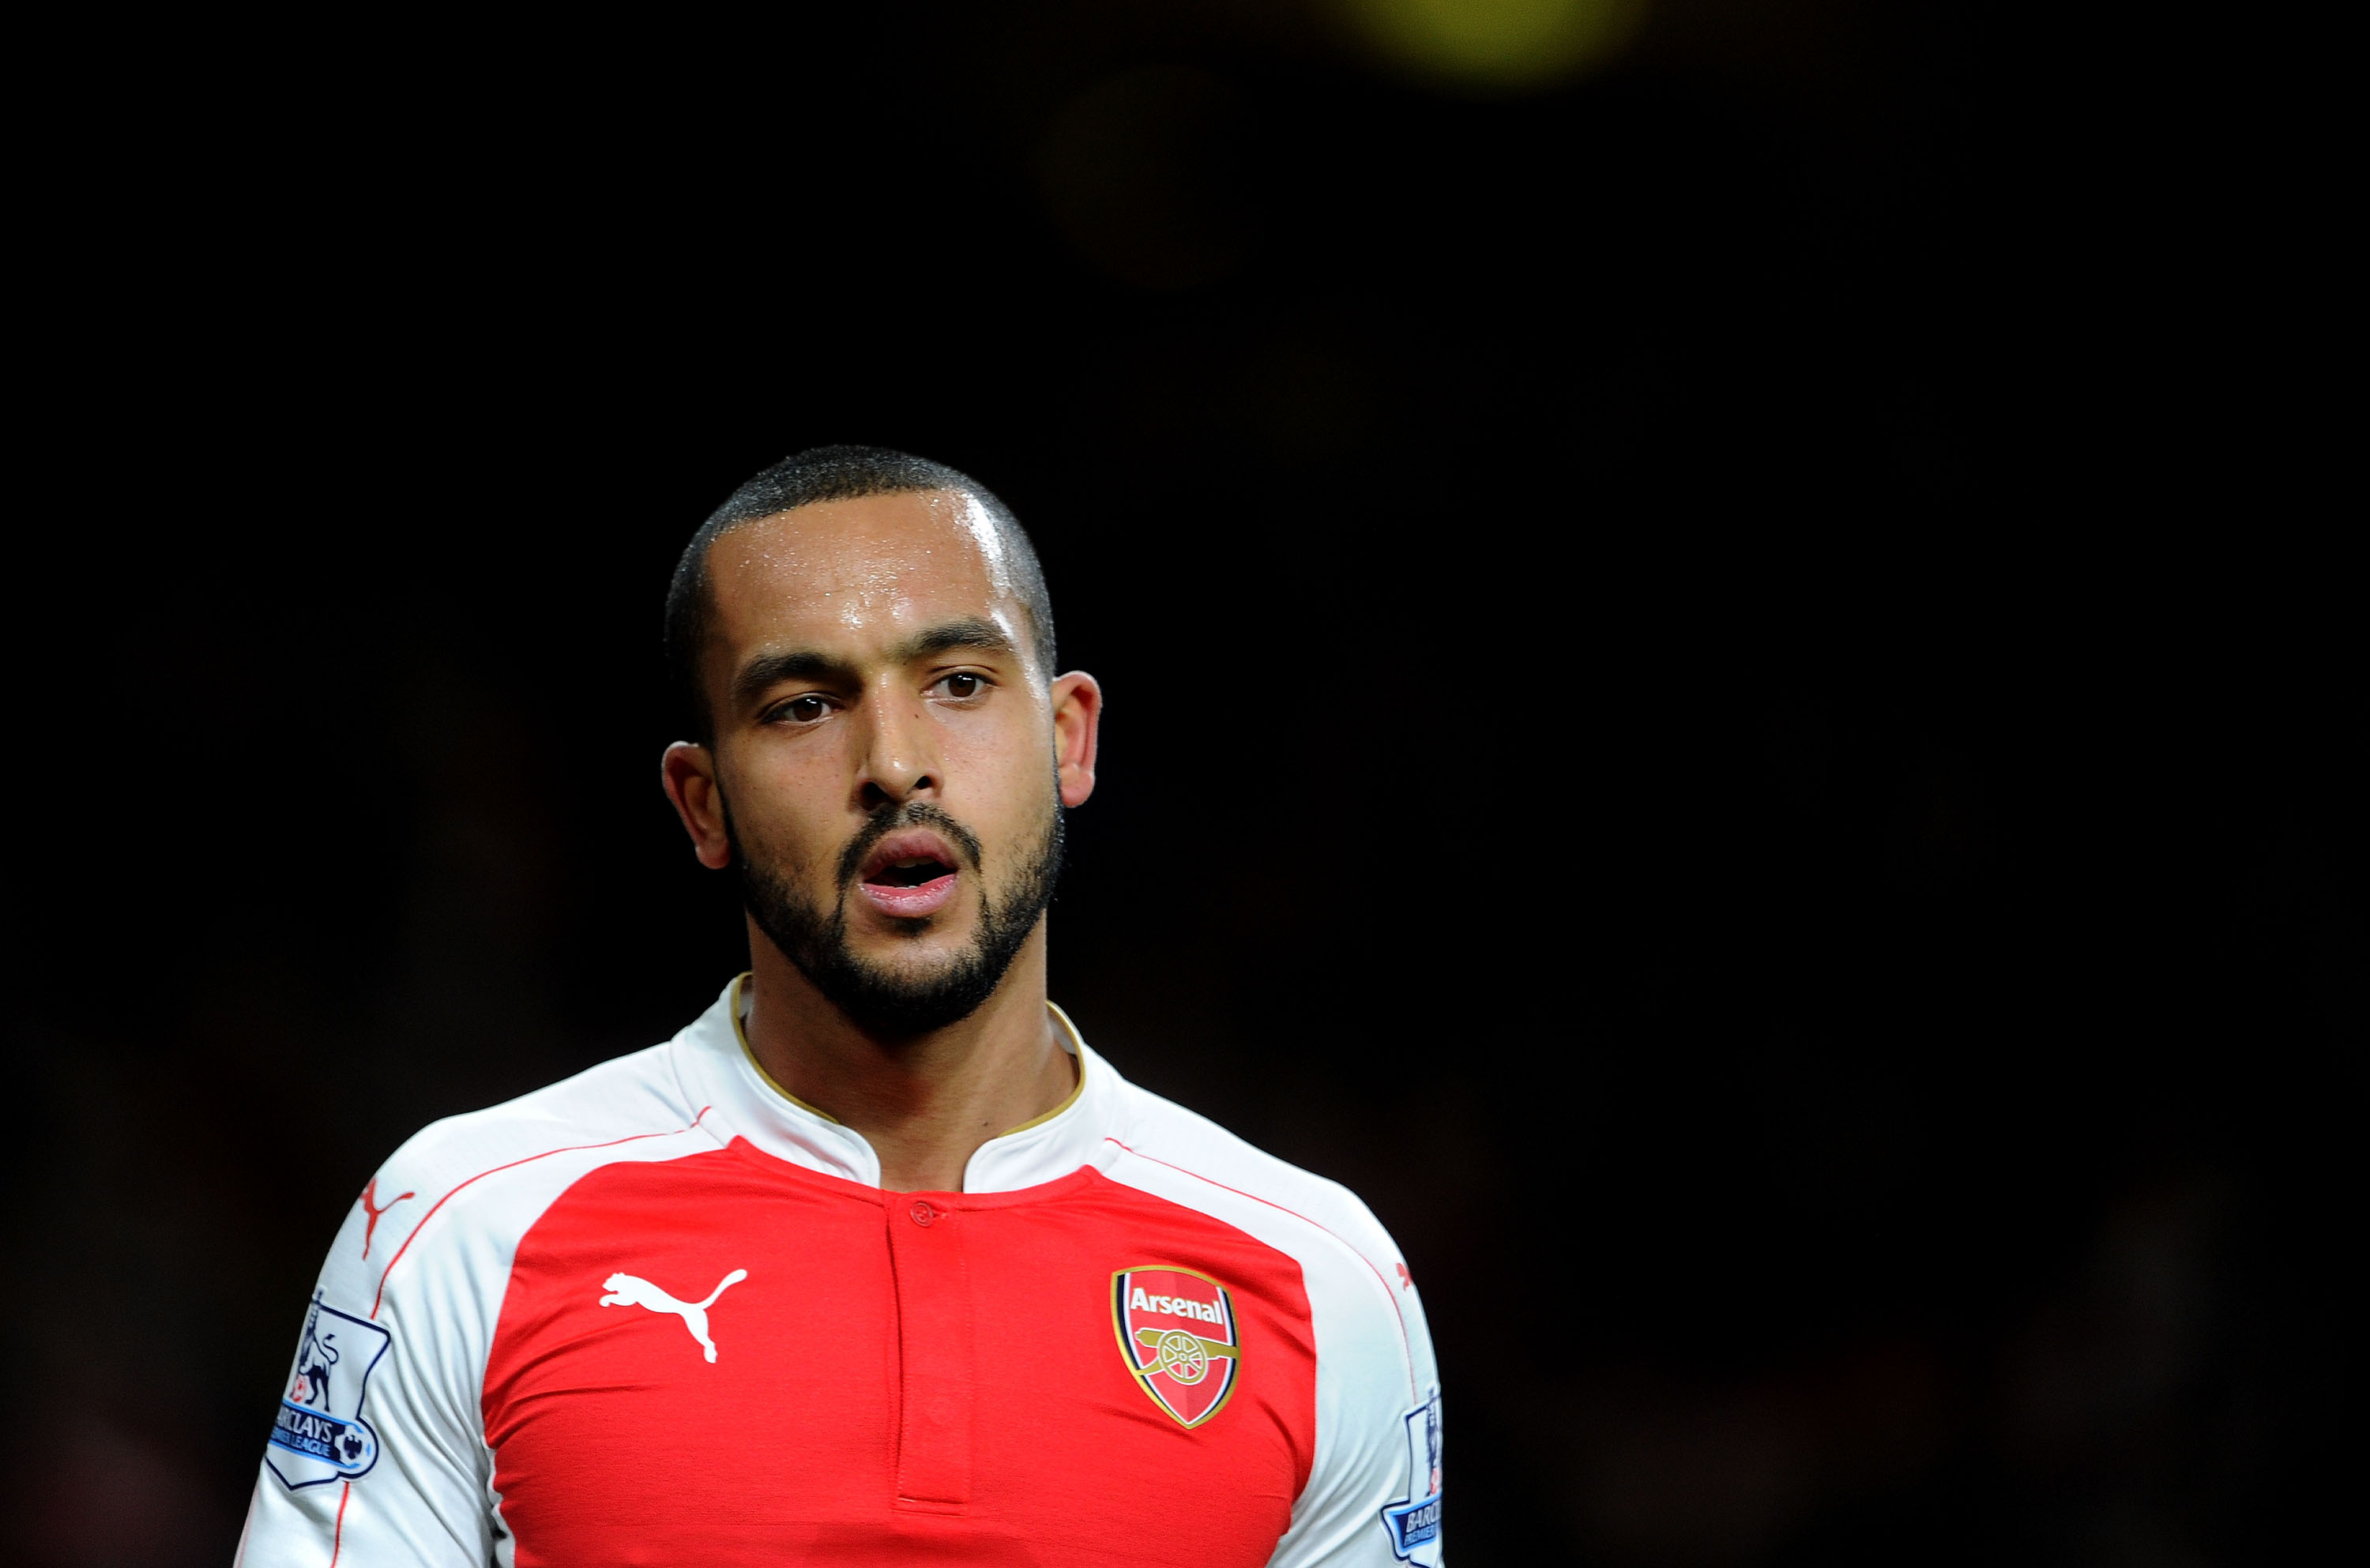 Theo Walcott's return from injury comes at the perfect time for Arsenal ahead of Olympiakos clash